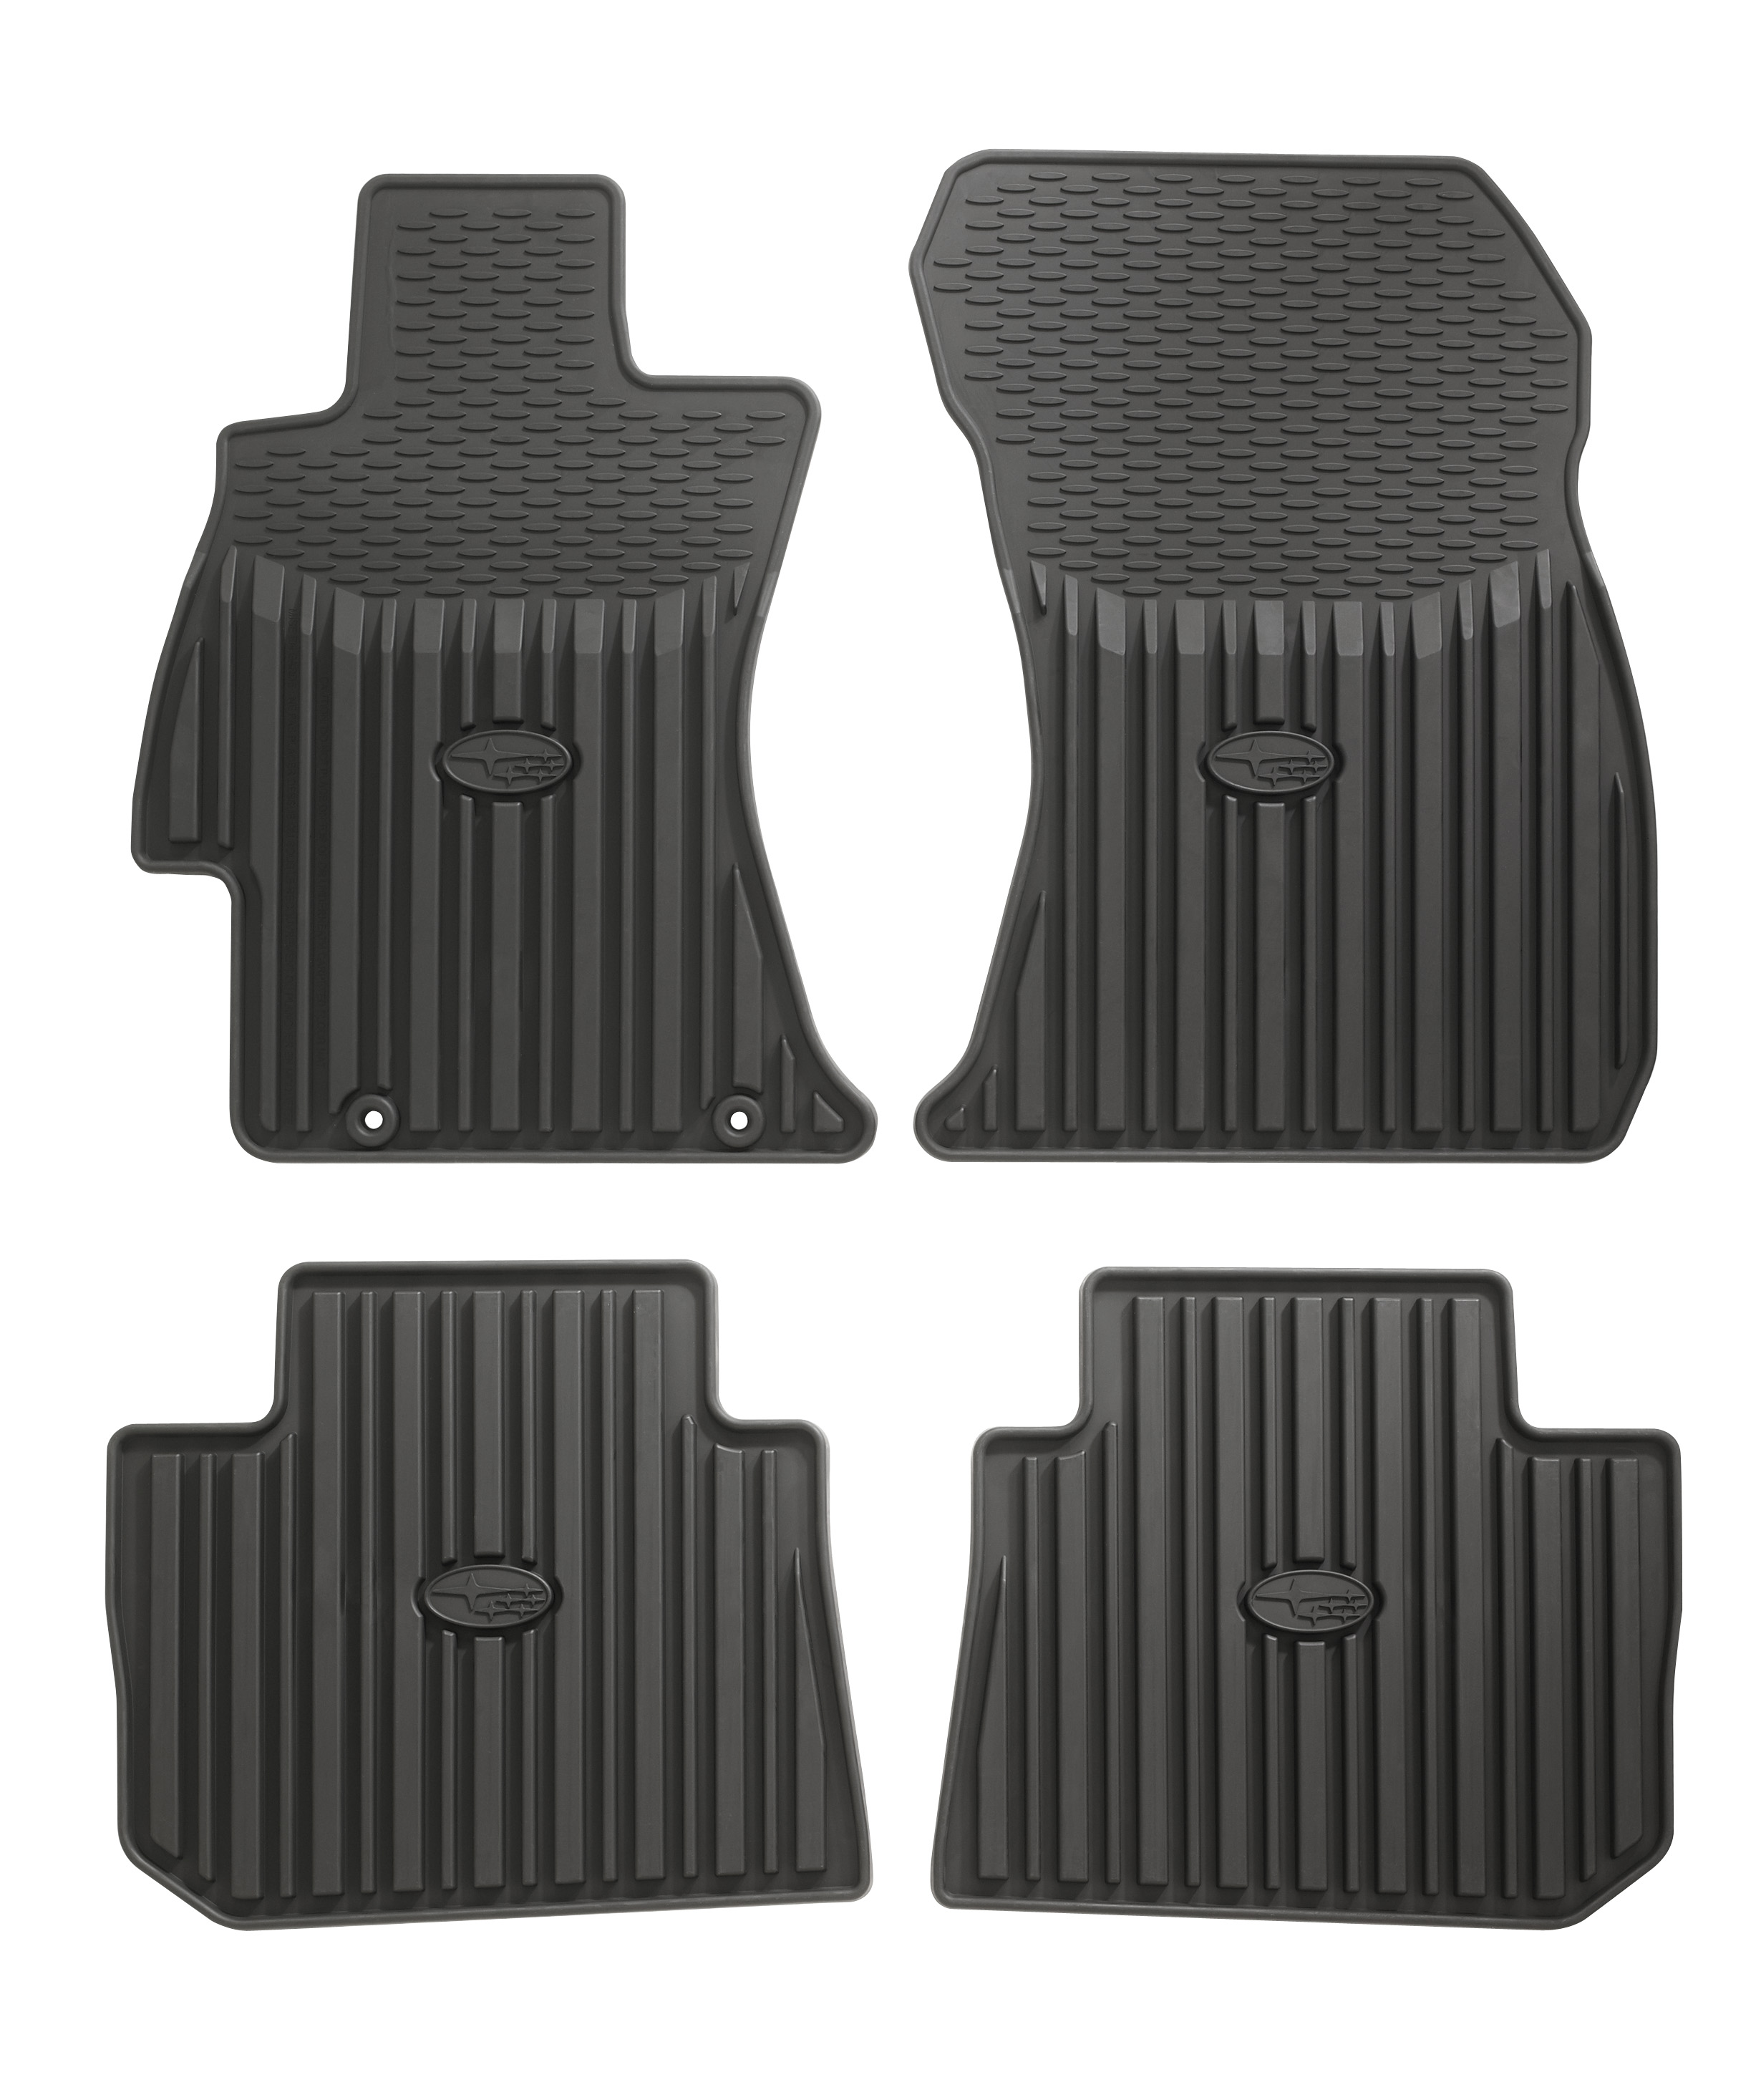 Weathertech floor mats ontario - For Use Over Top Of Carpeted Floor Mats All Weather Floor Mats 642